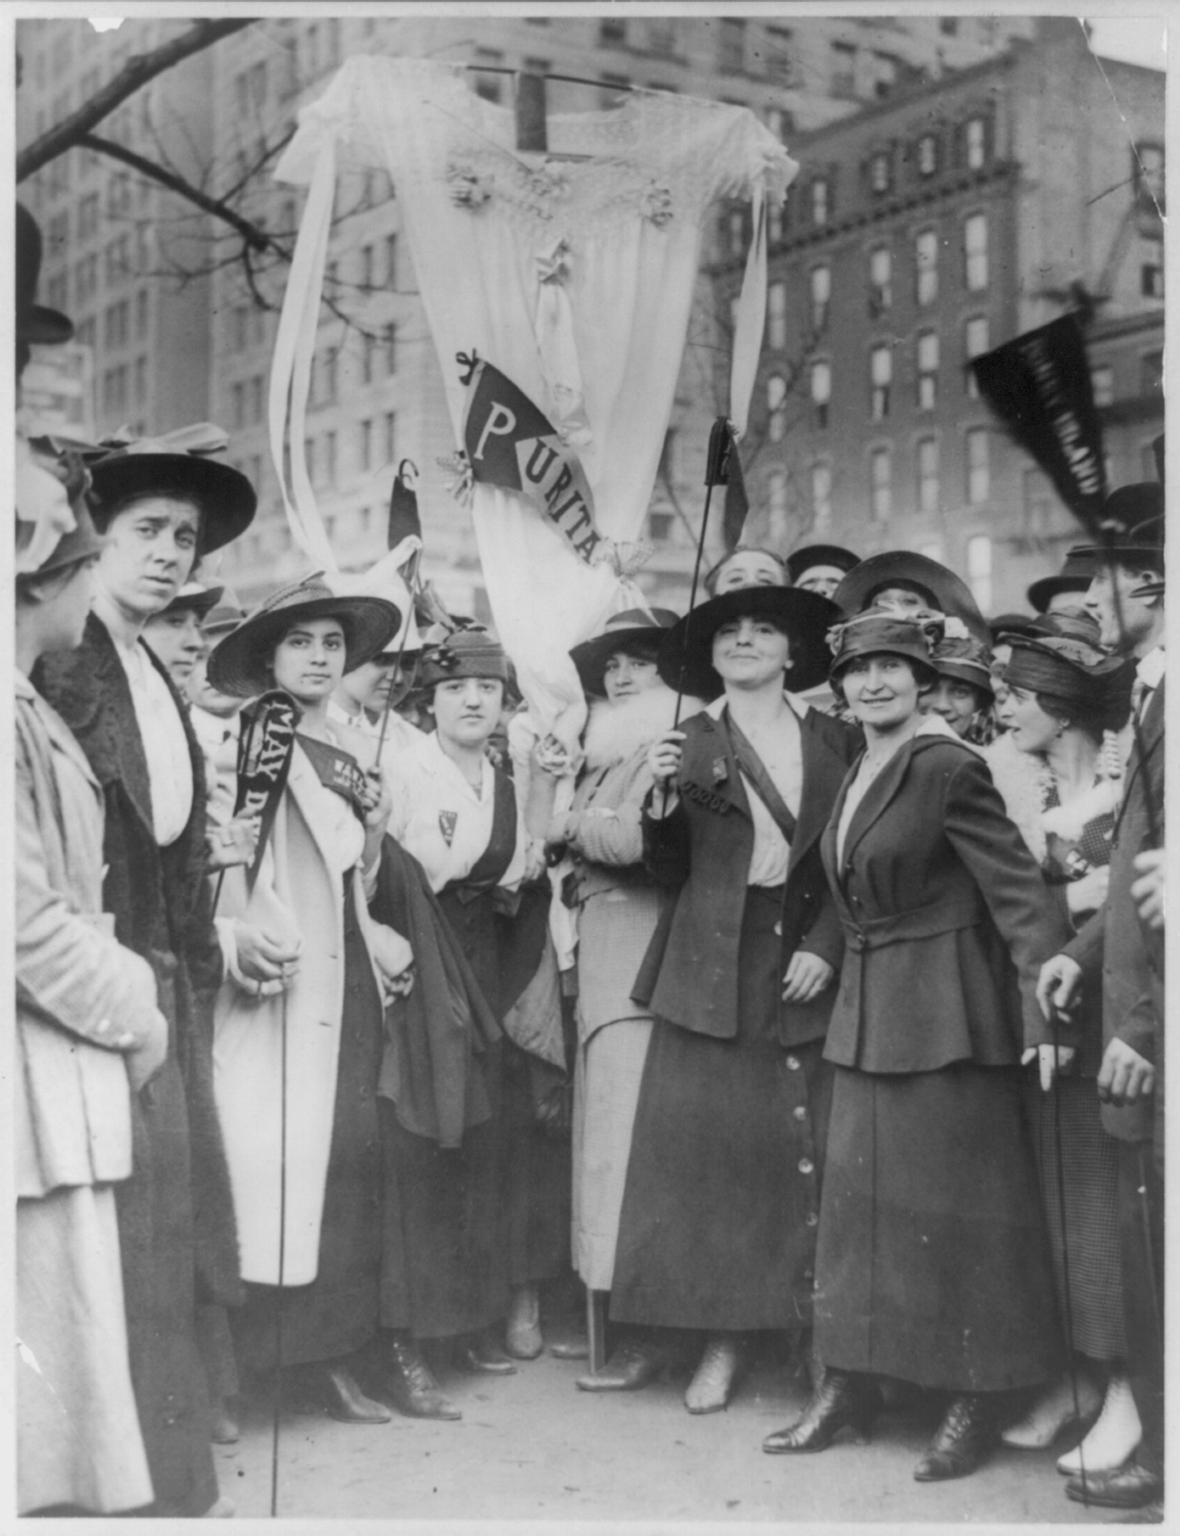 Garment_workers_parading_on_May_Day,_New_York.png